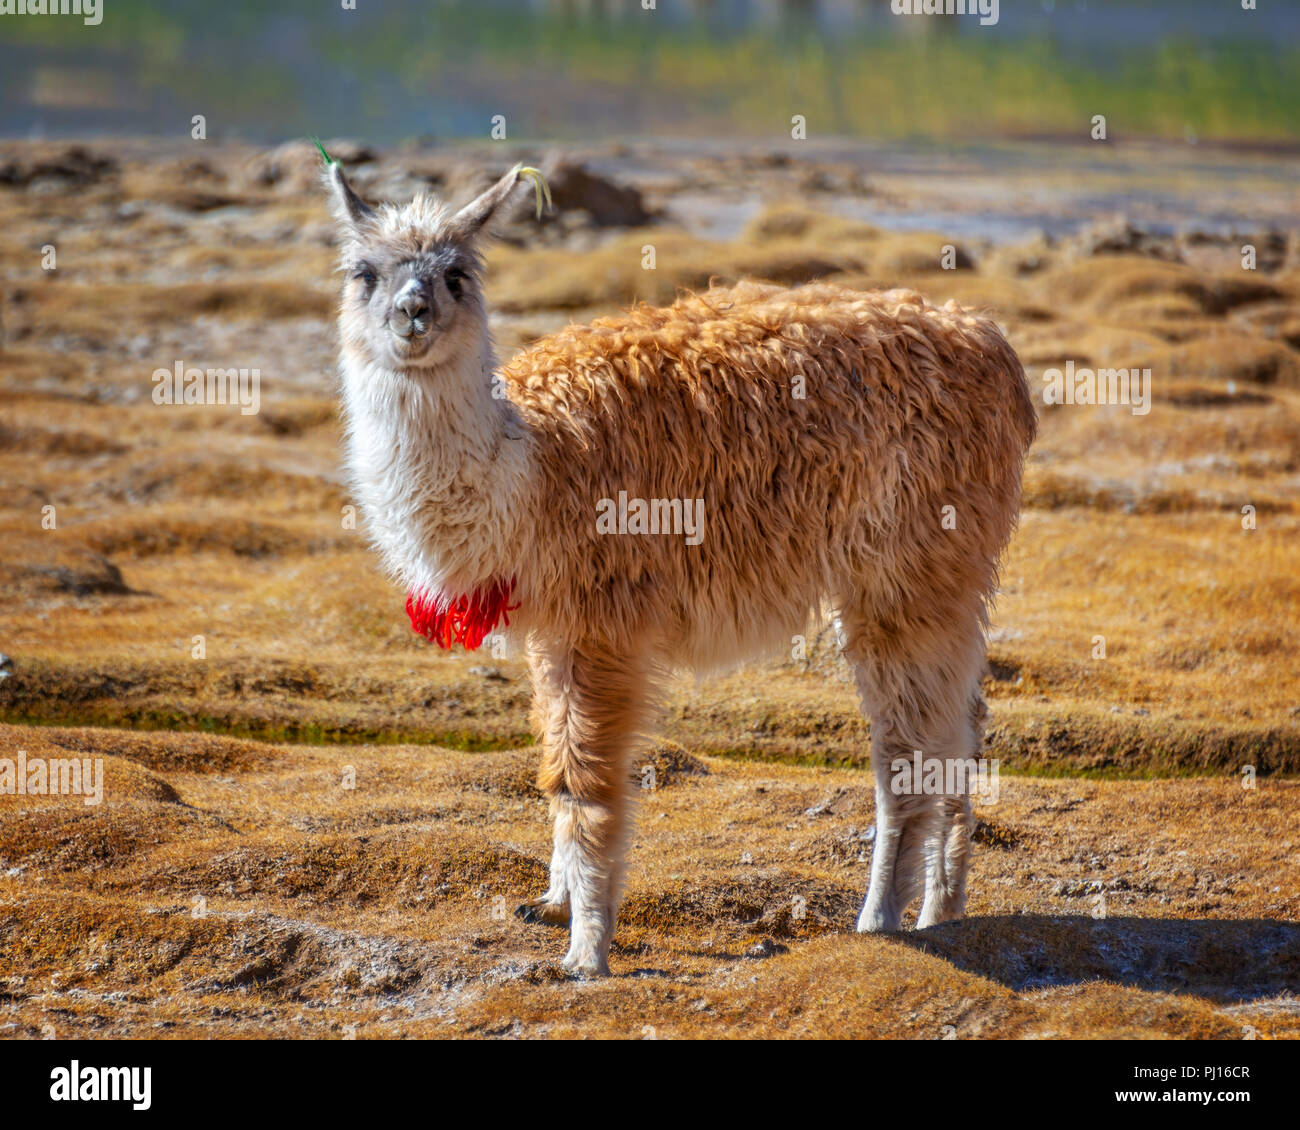 Portrait of a llama looking at the camera in Bolivia, South America - Stock Image